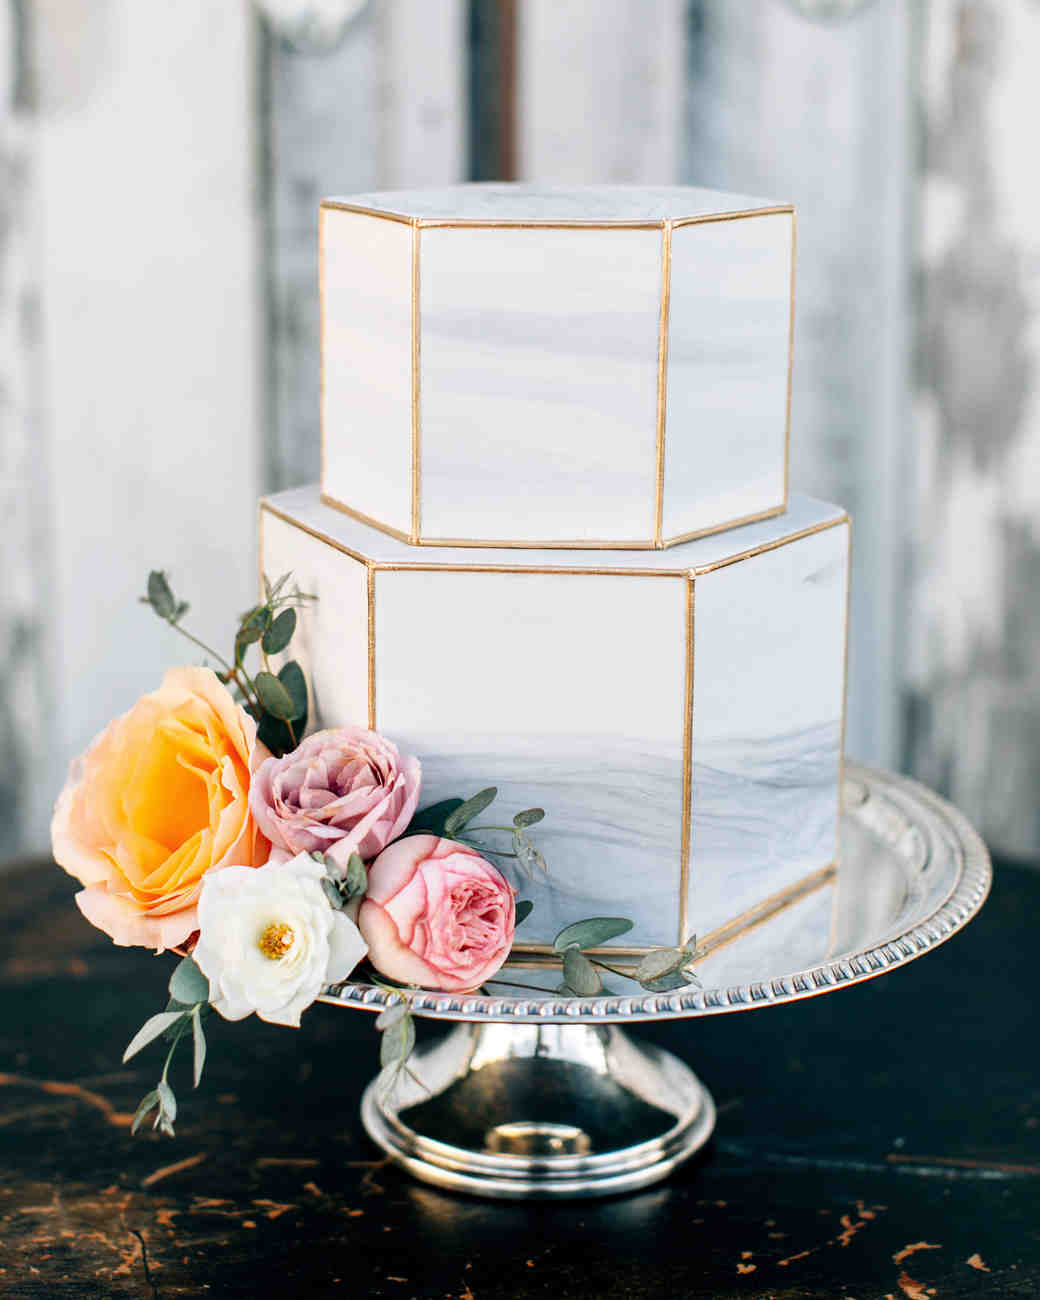 25 wedding cake design ideas thatll wow your guests martha cake designs lora grady junglespirit Gallery